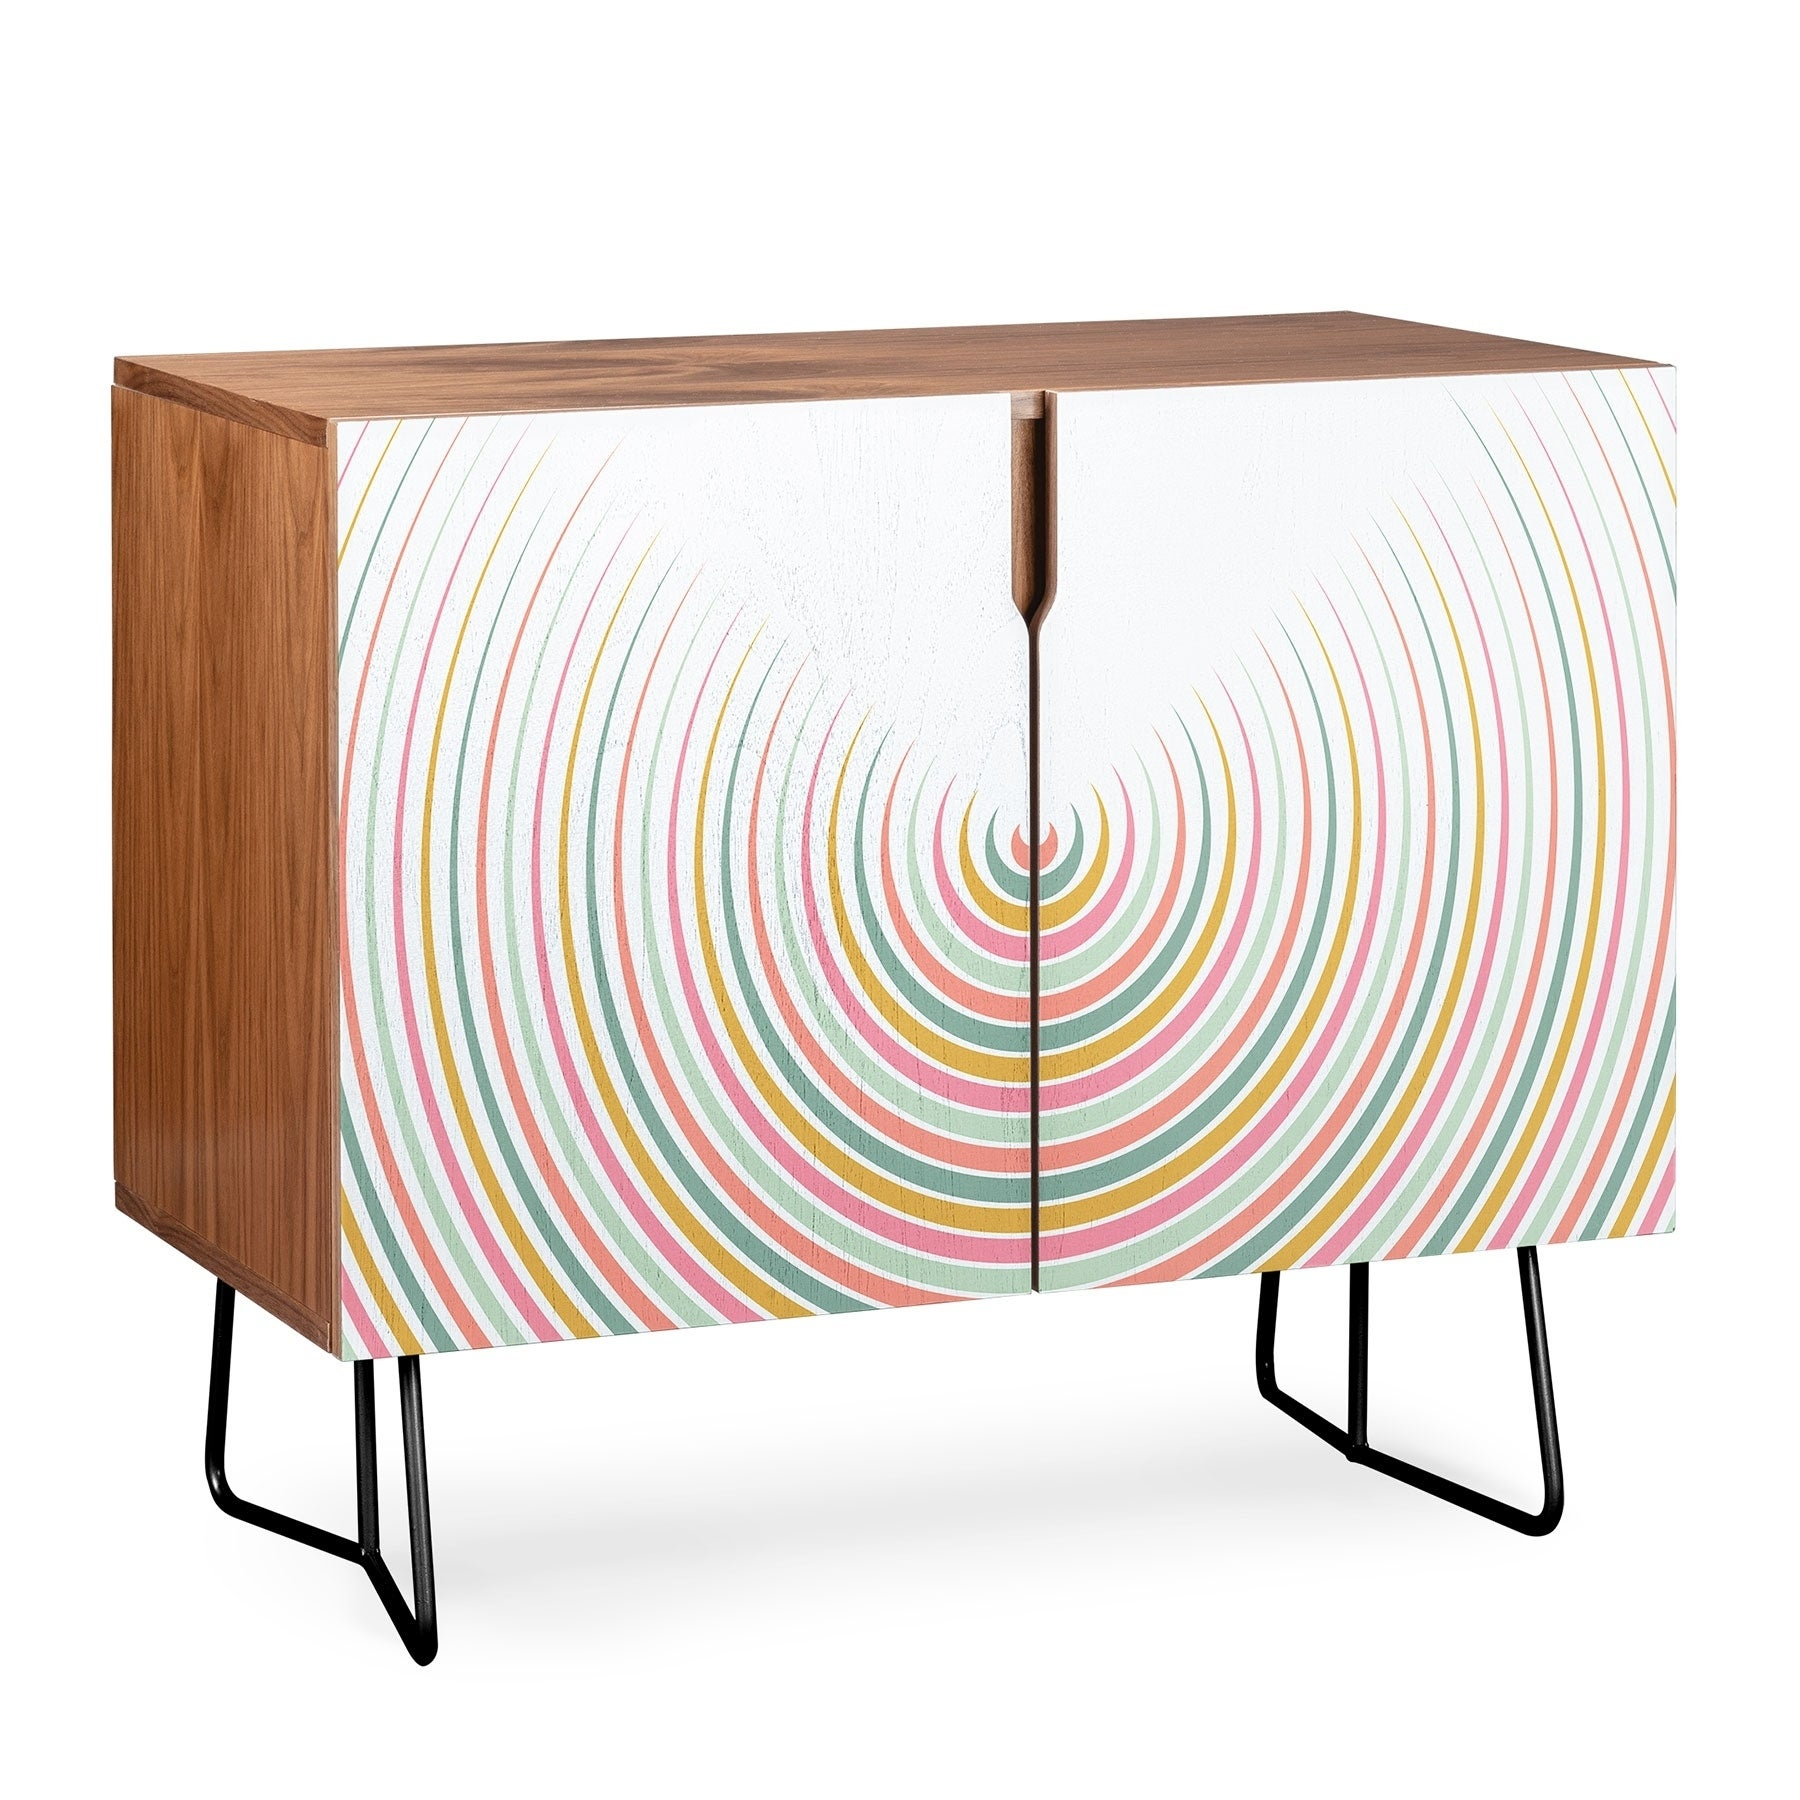 Deny Designs Festival Eclipse Credenza (Birch Or Walnut, 2 Leg Options) Intended For Festival Eclipse Credenzas (Gallery 2 of 30)